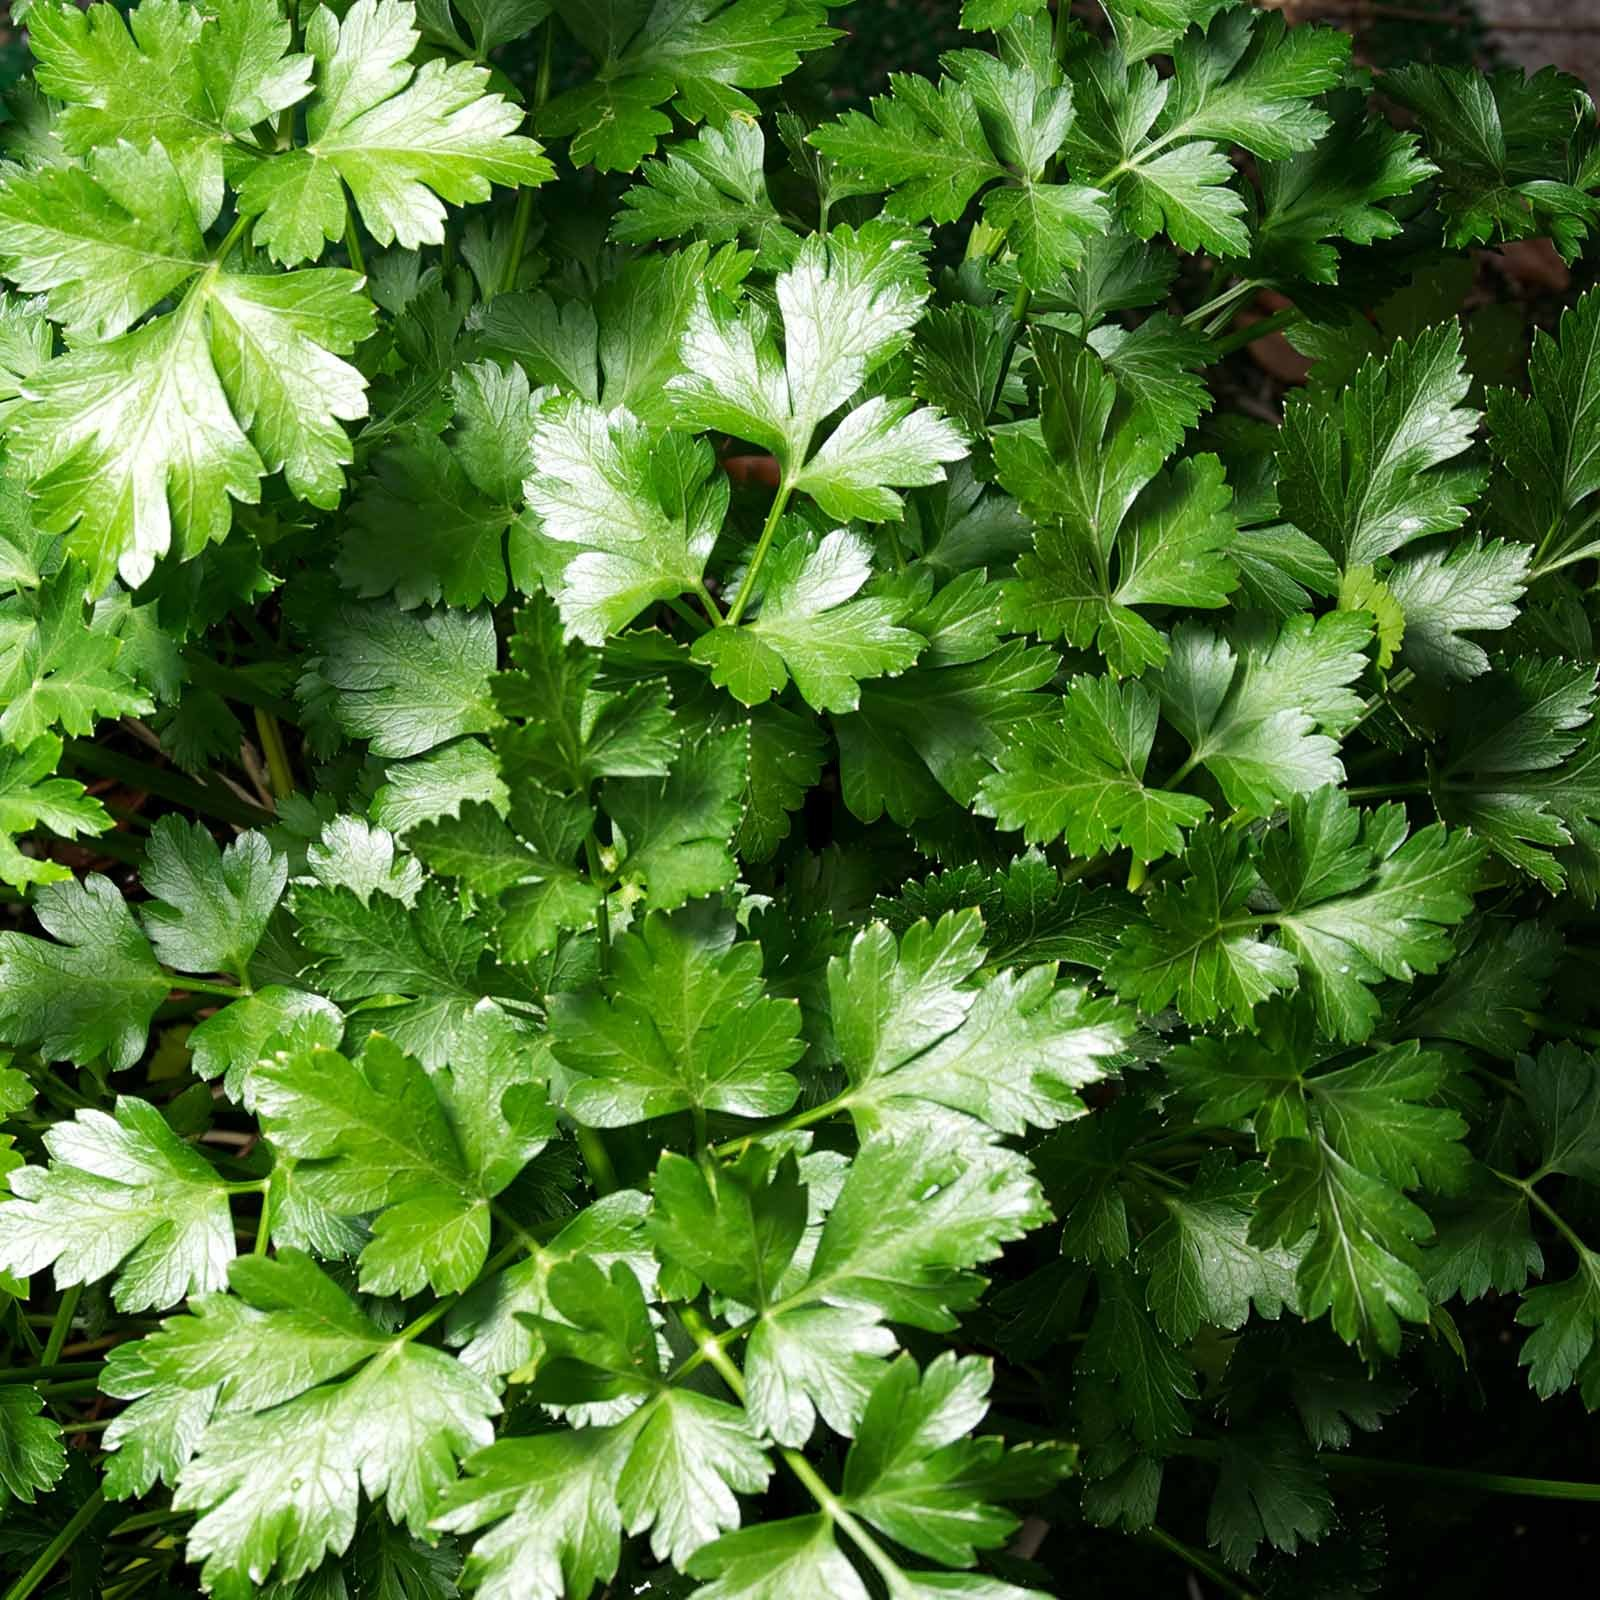 Dark Green Italian Flat-Leaf Parsley Seeds: 5 Lb - Bulk, Non-GMO Herb Seeds for Herbal Garden & Microgreens by Mountain Valley Seed Company (Image #1)